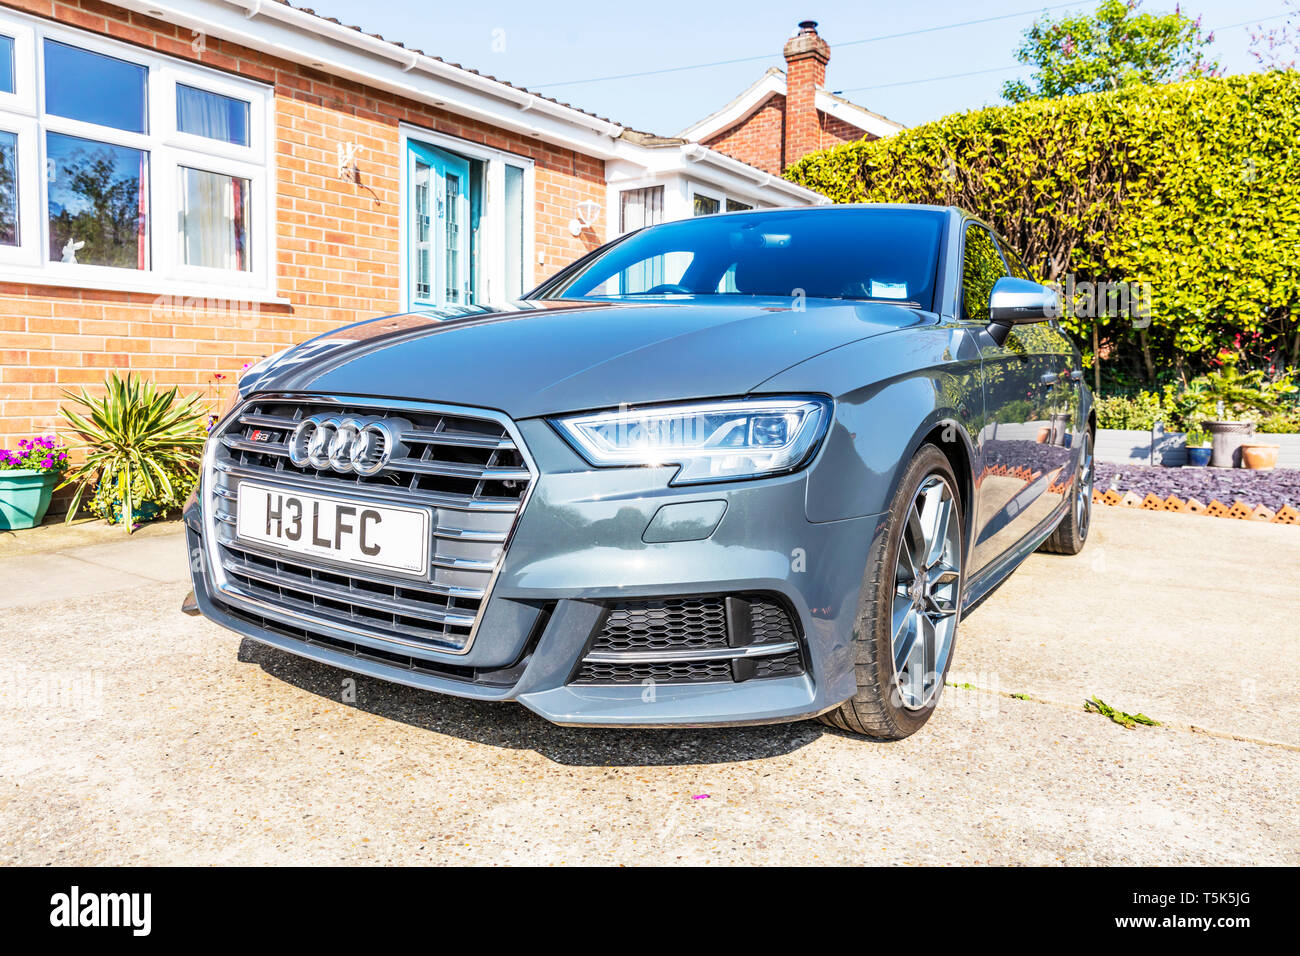 Audi Car High Resolution Stock Photography And Images Alamy